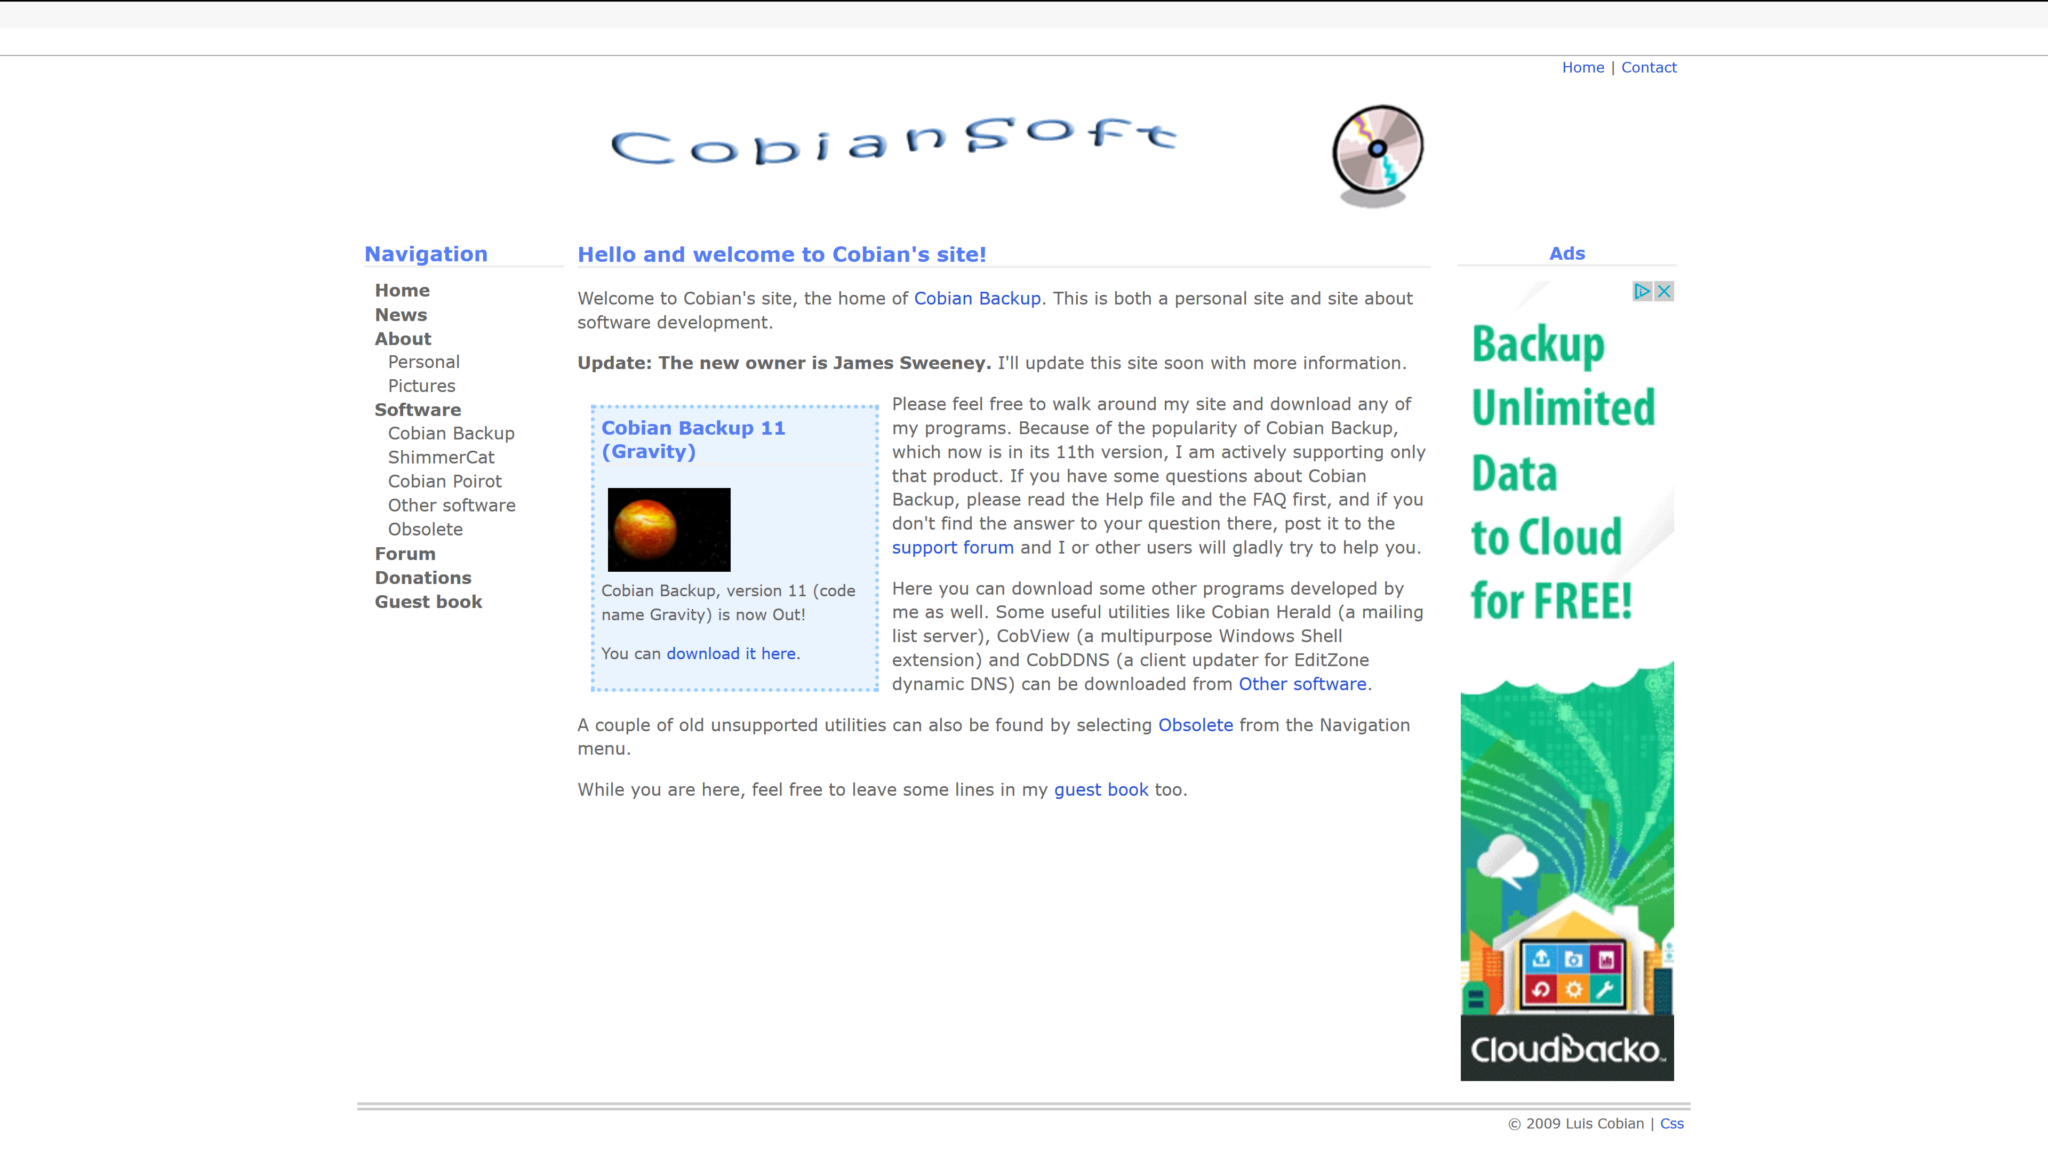 Cobian Backup 11 (Gravity)